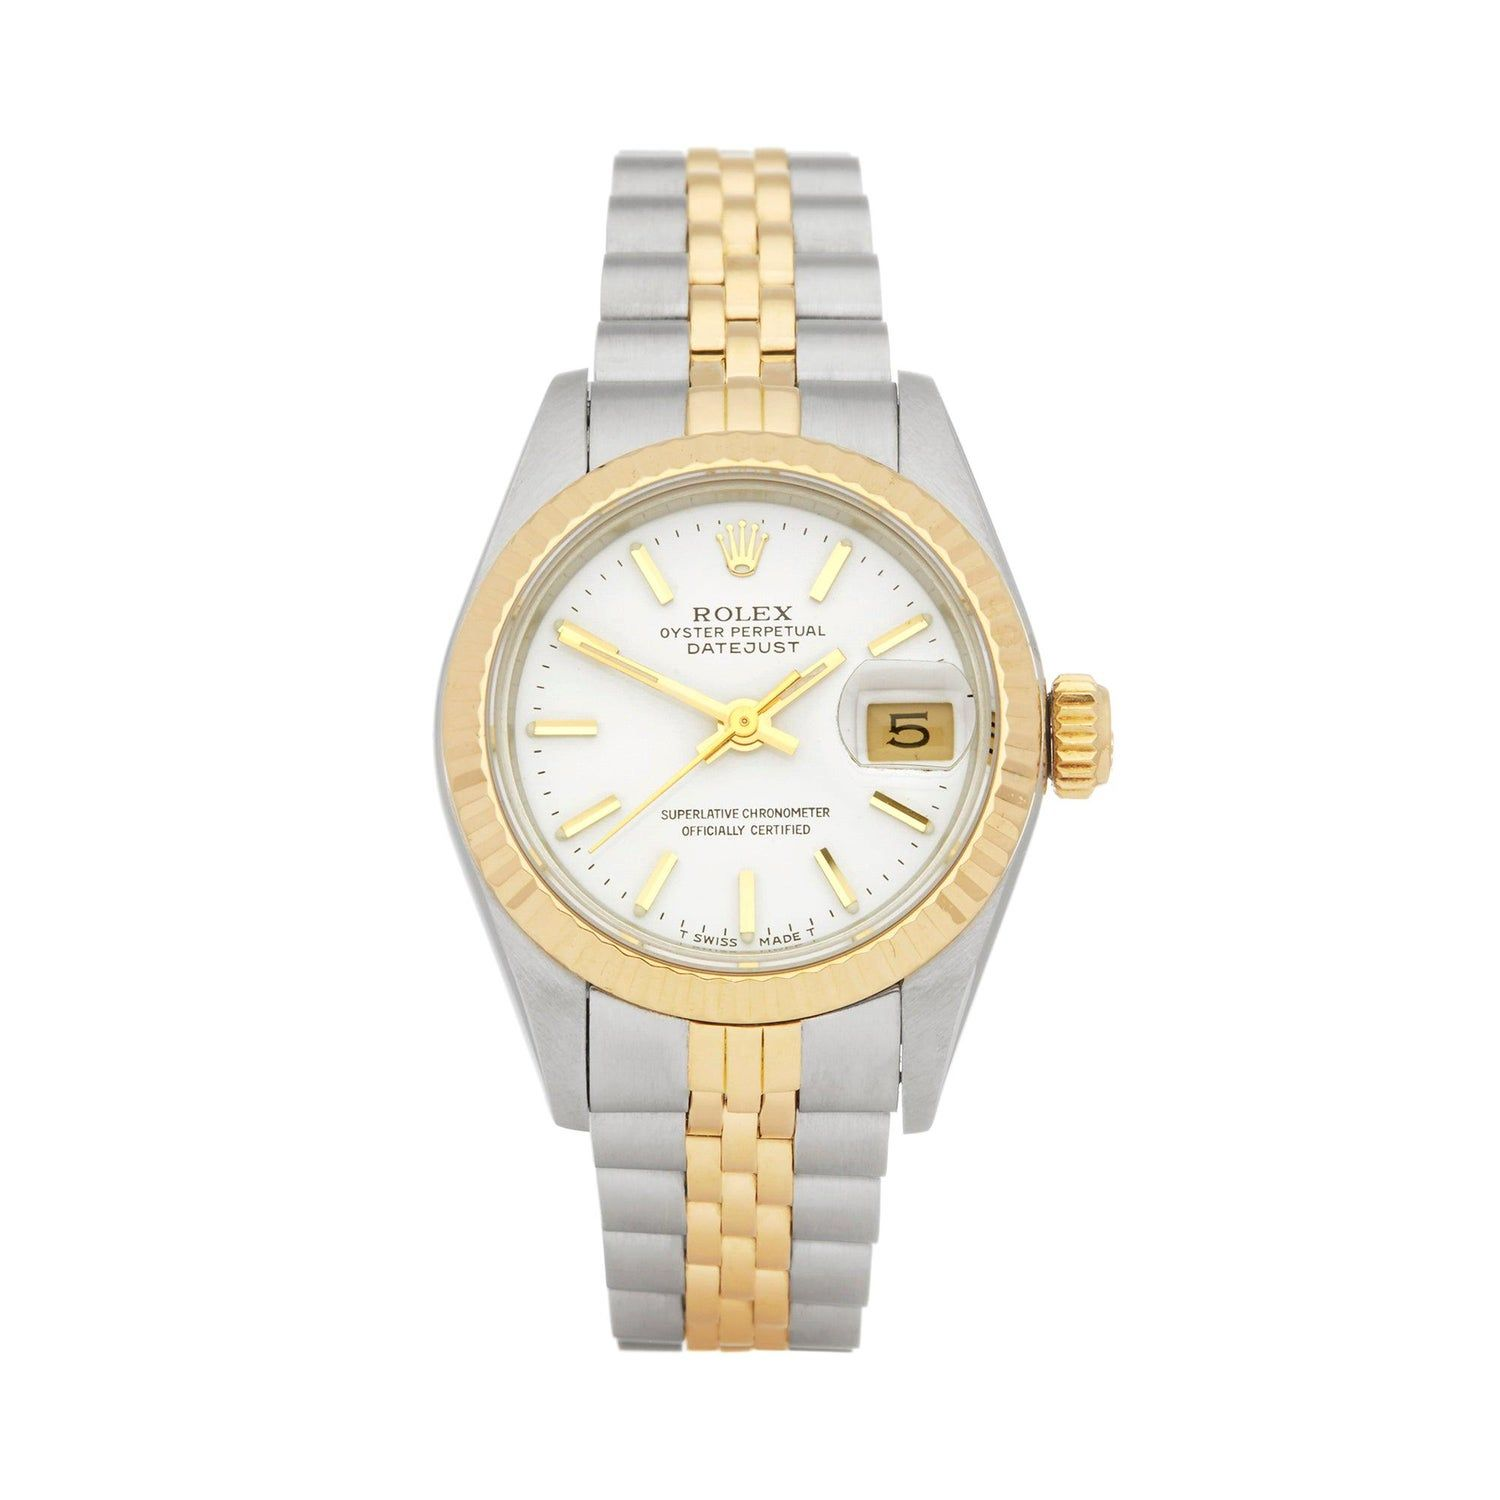 Rolex Datejust 26 Stainless Steel And Yellow Gold 69173 Rolex Datejust Rolex Watches Rolex